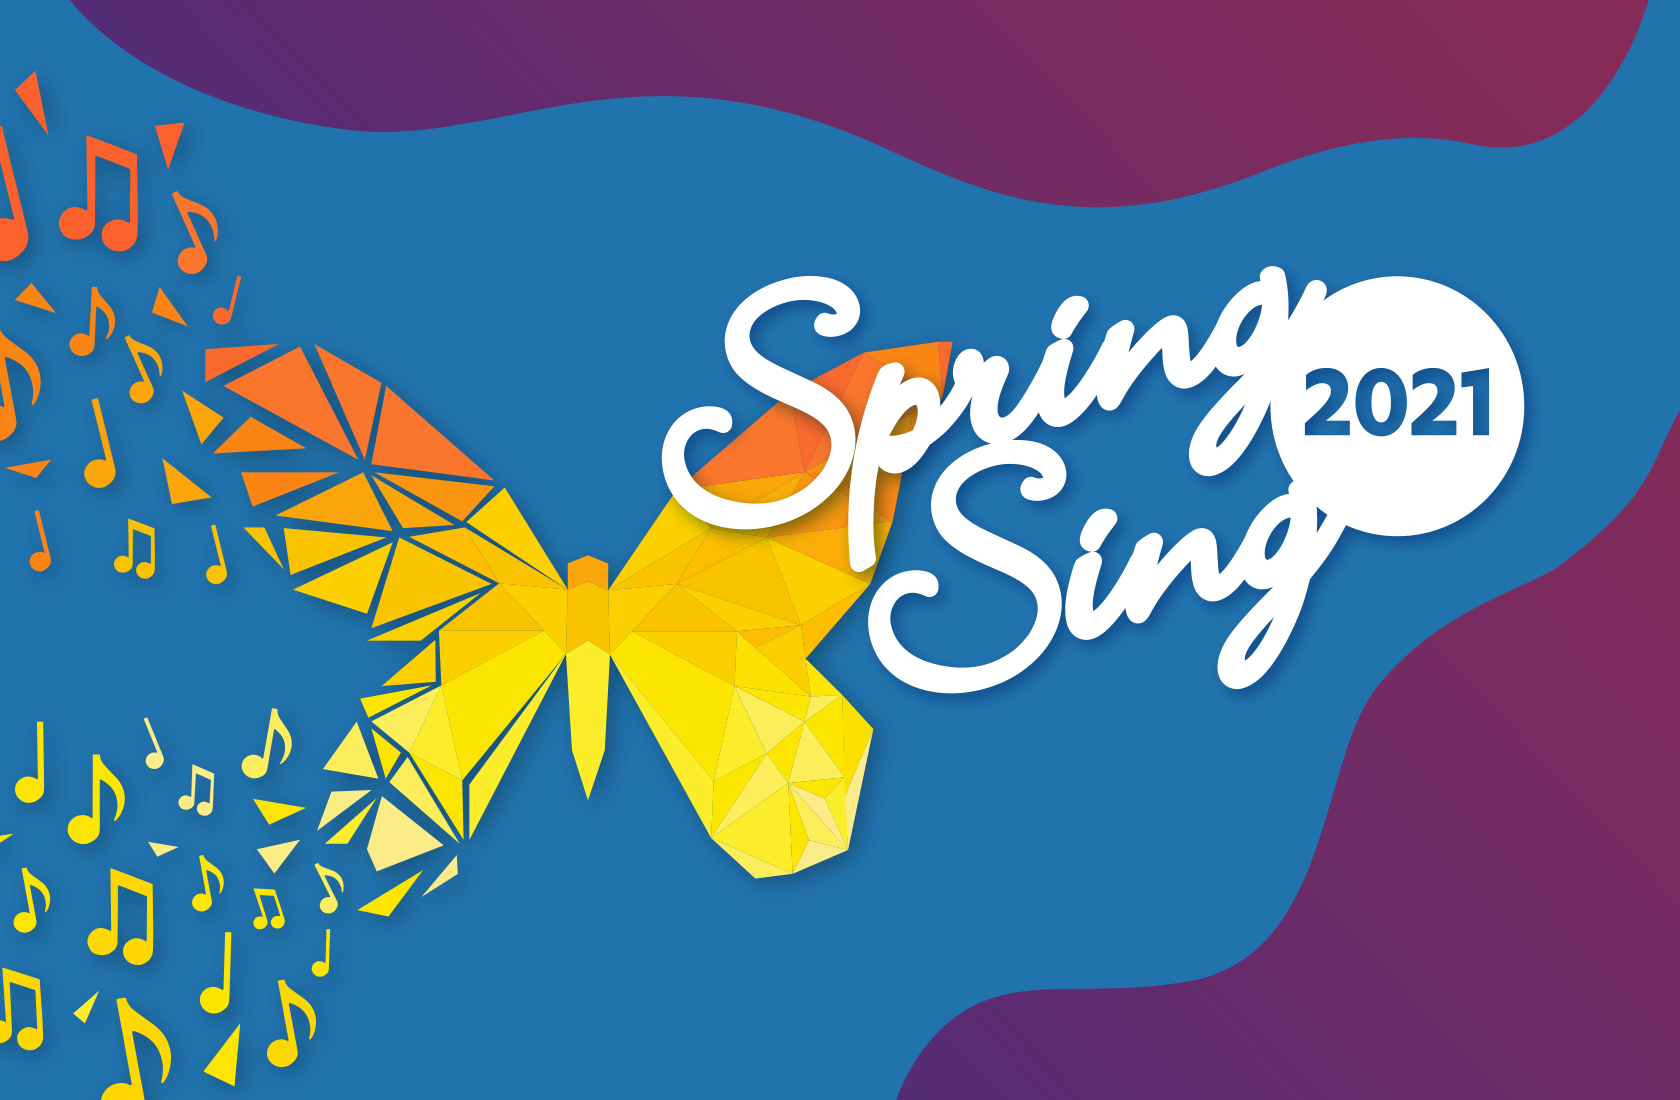 Spring Sing logo - A Butterfly turning into music notes.